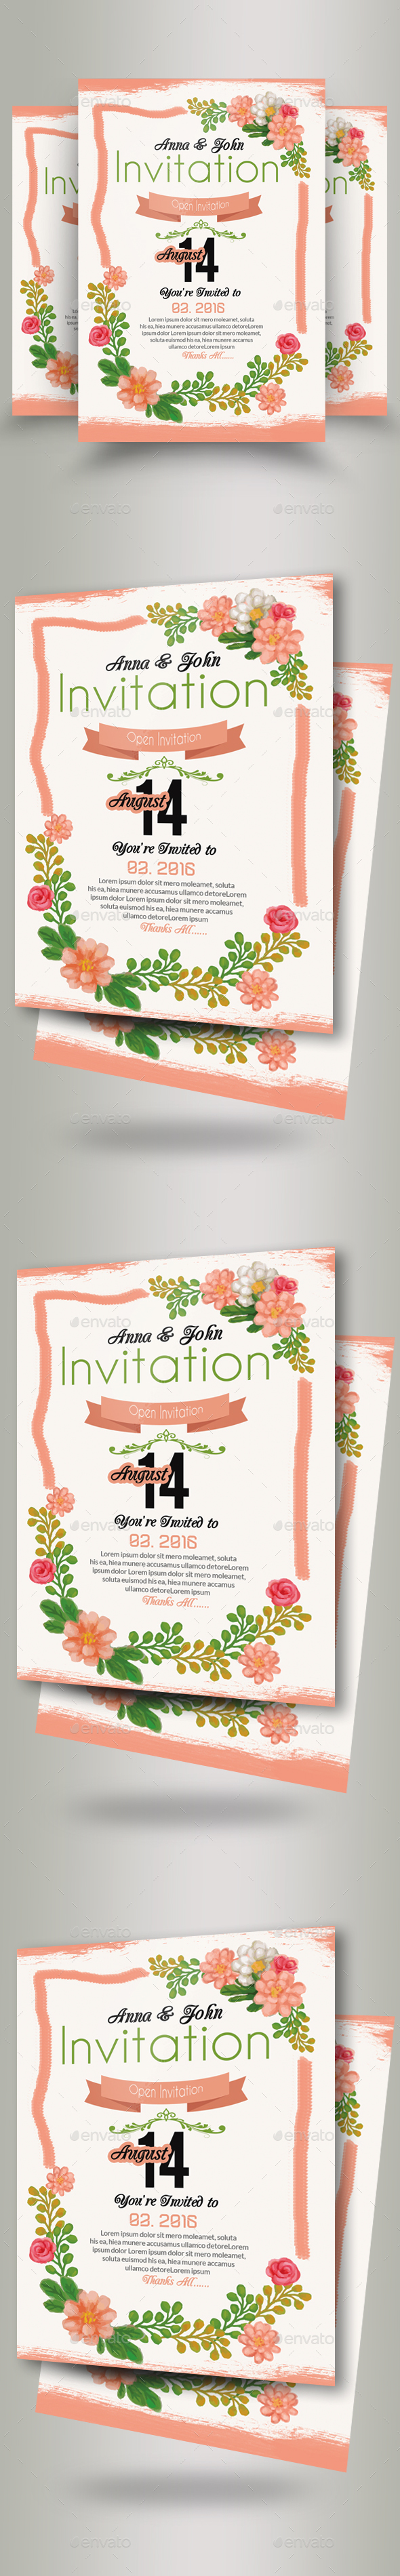 GraphicRiver Wedding Invitation Flyer Template 20913976